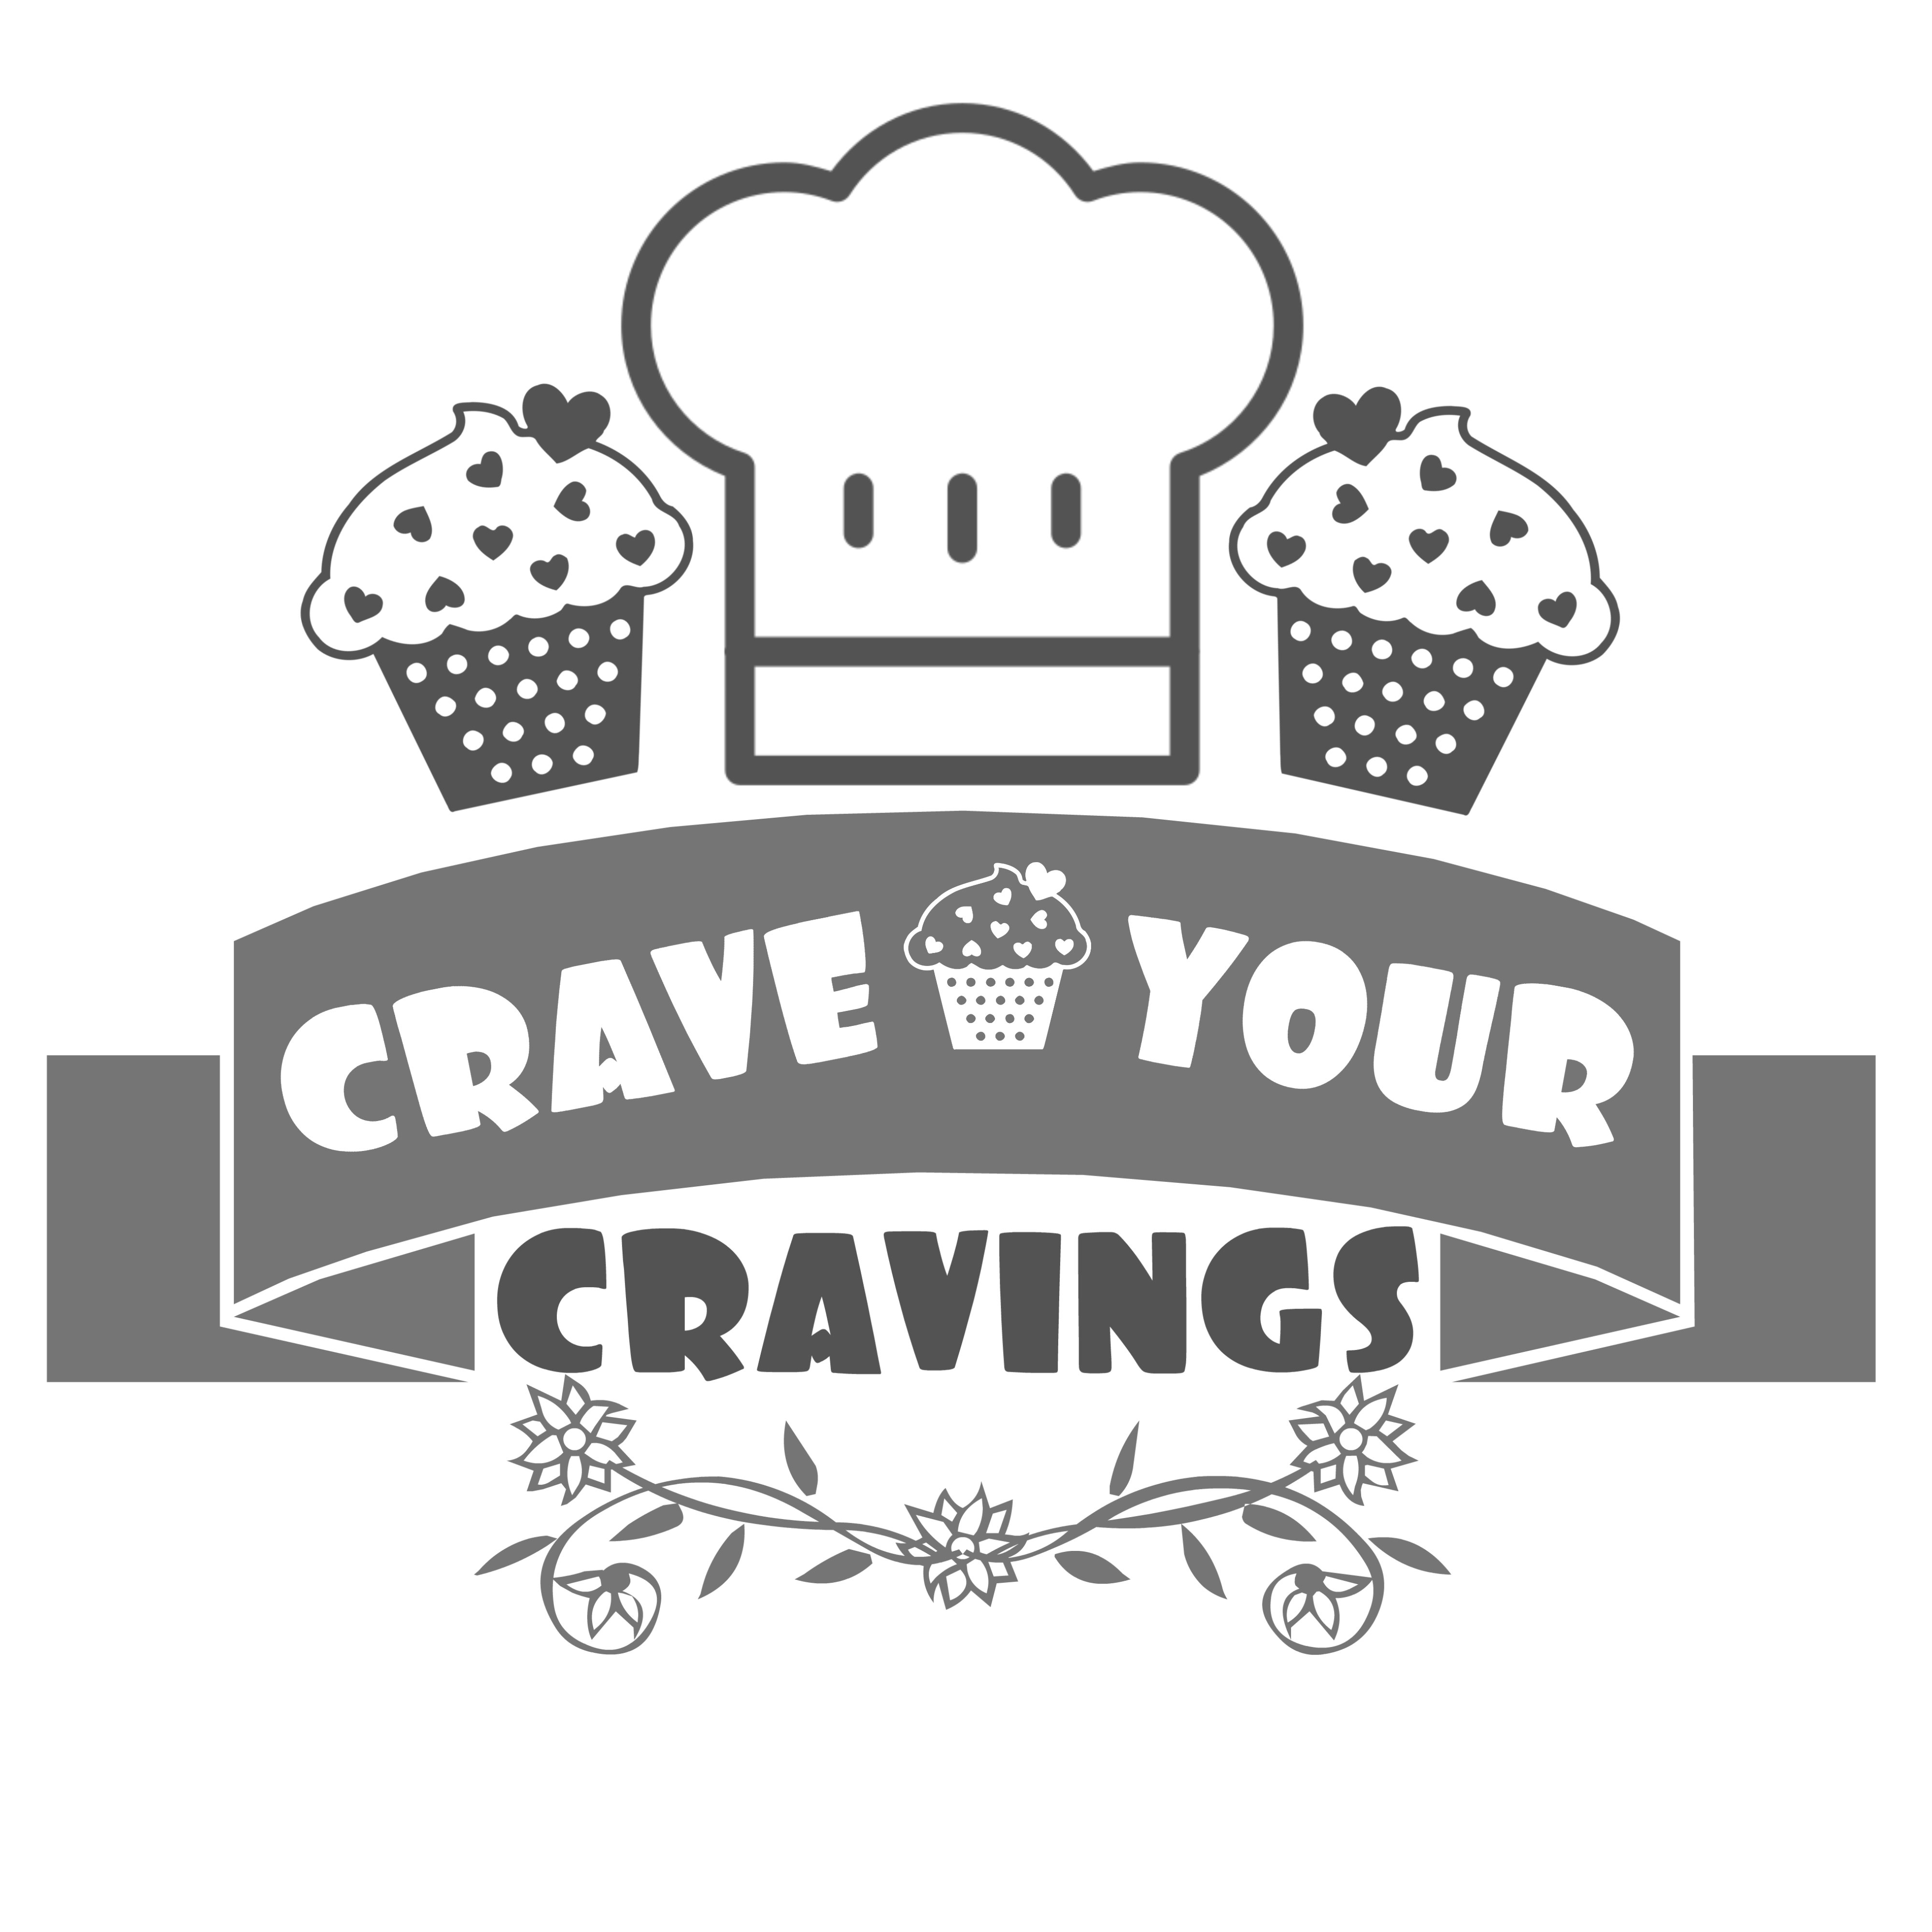 Crave Your Cravings